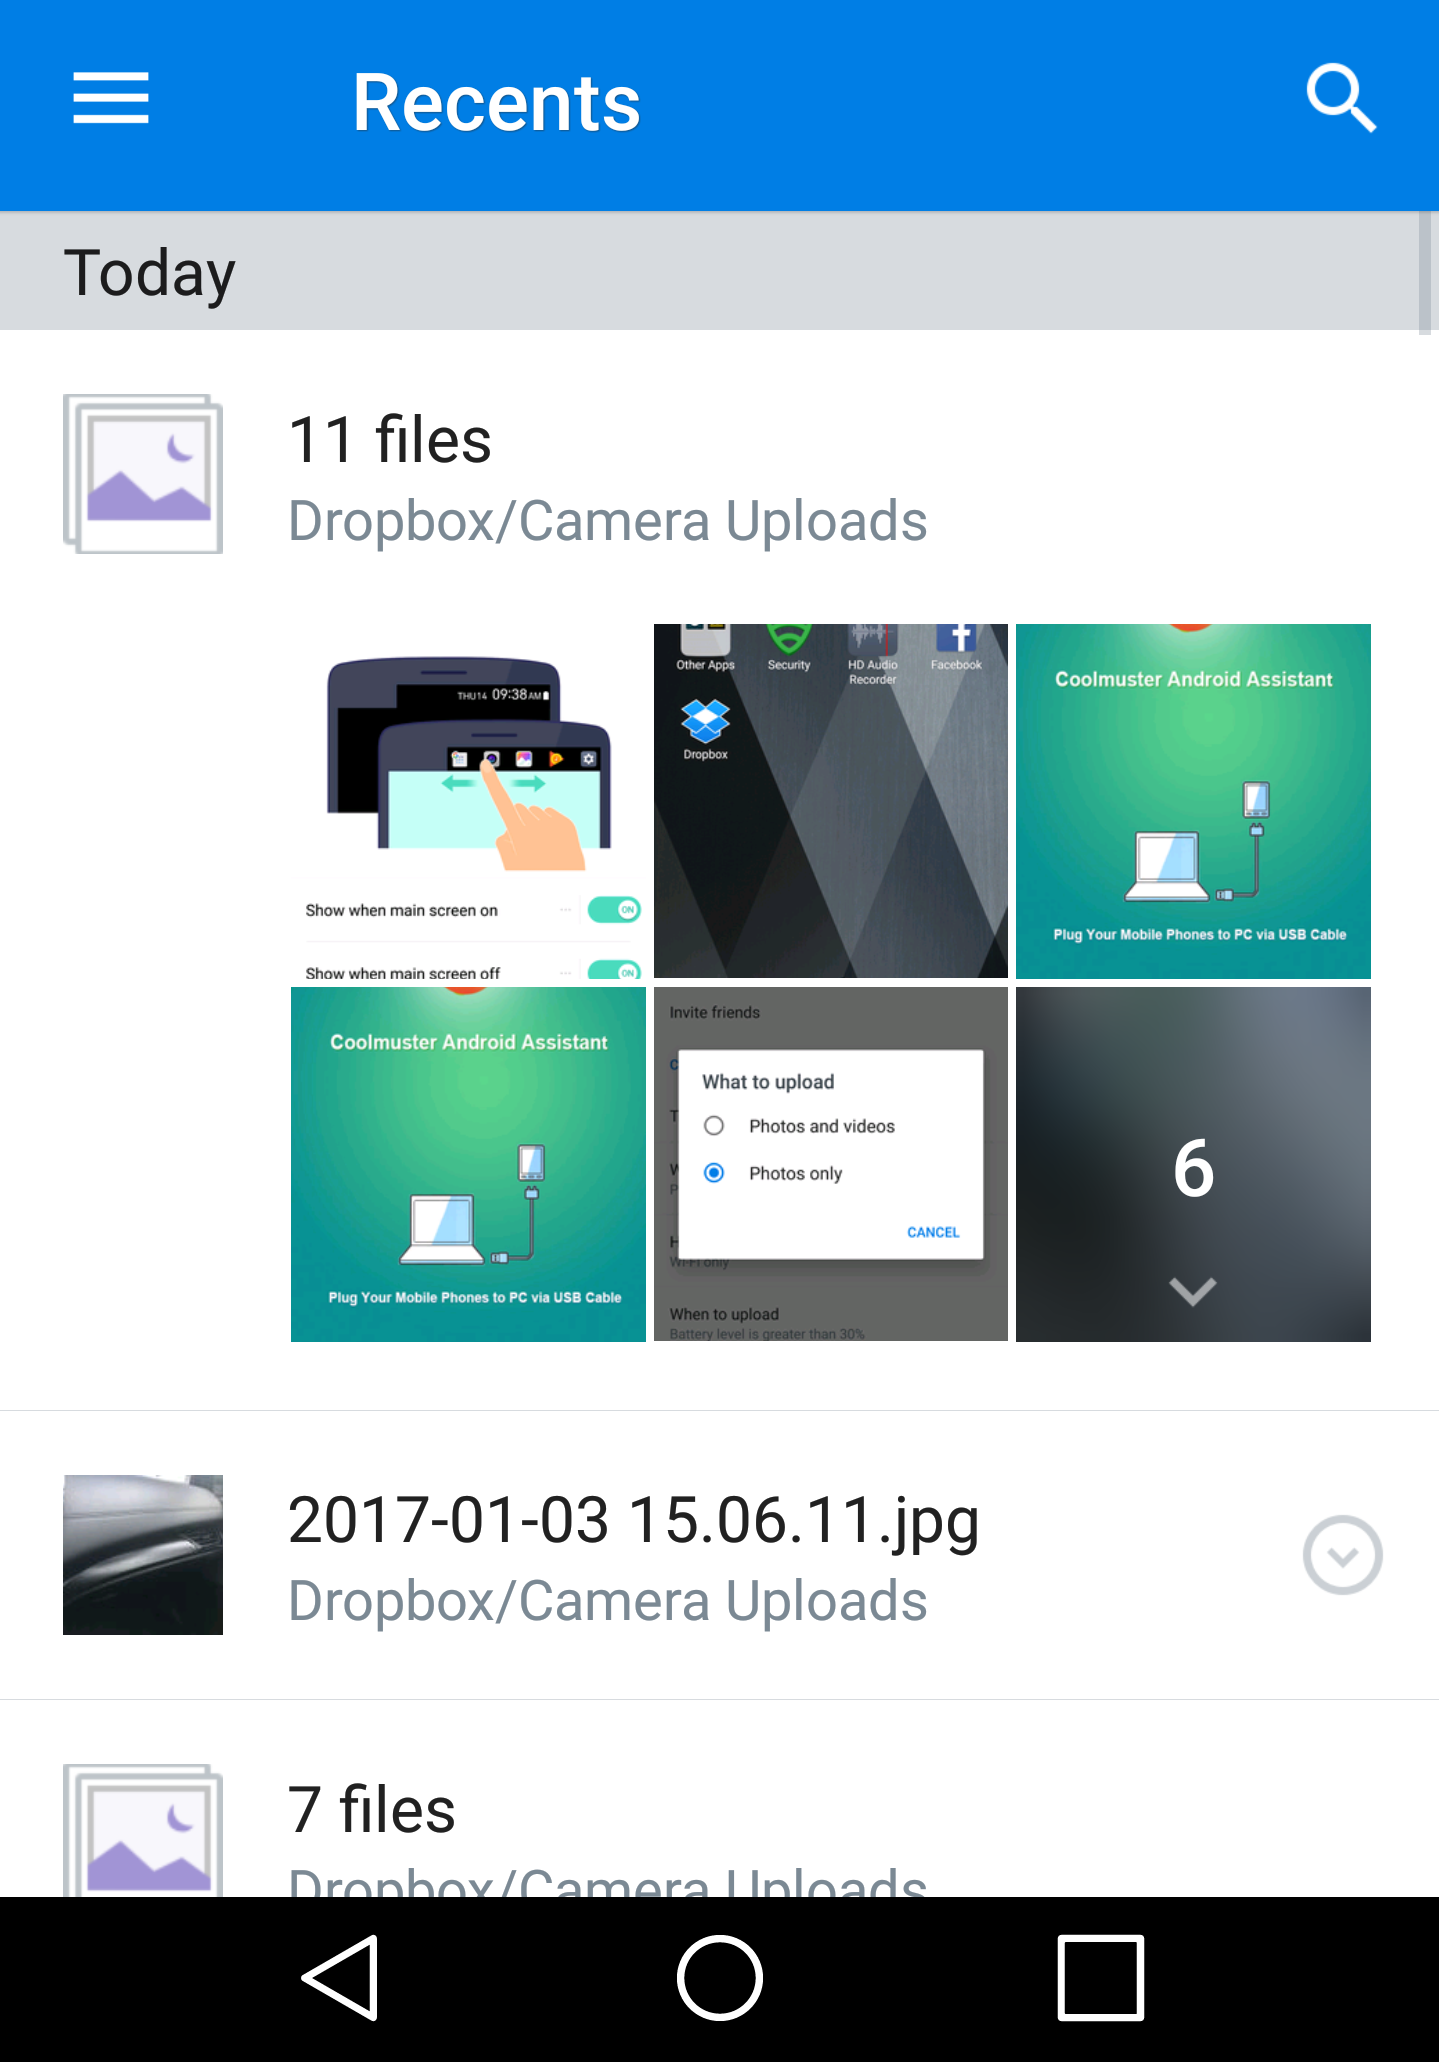 android dropbox 11 files uploaded